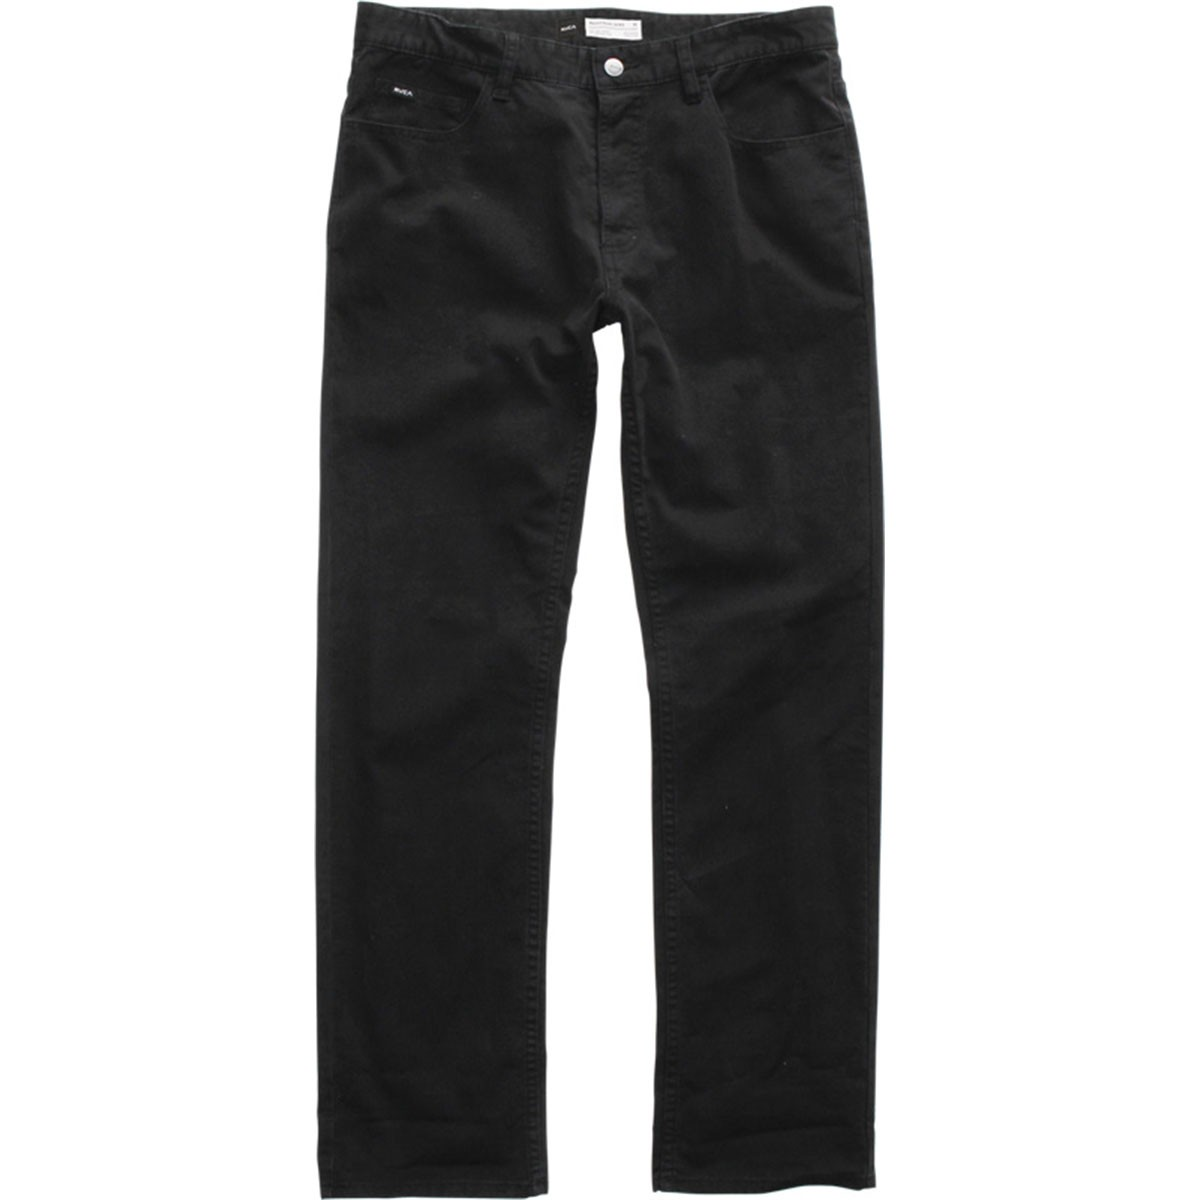 RVCA Stay RVCA Youth Pants - Black